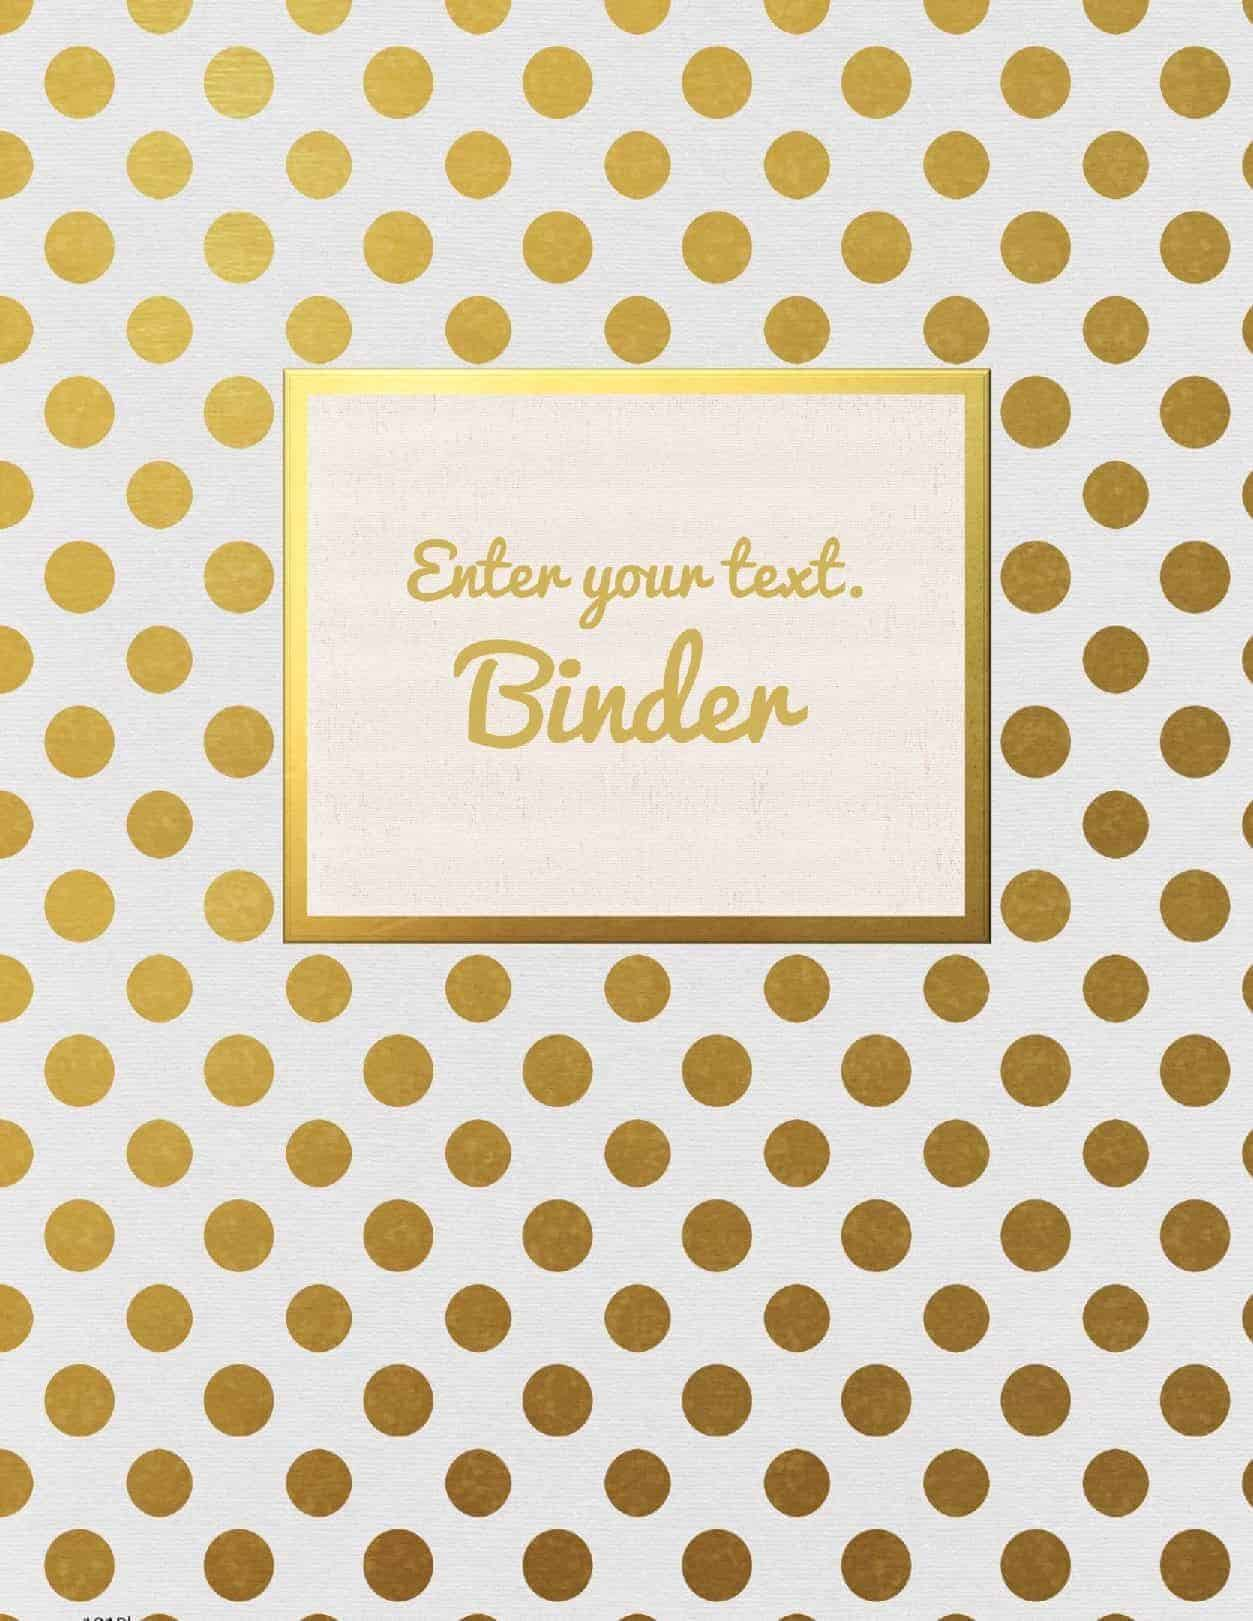 Awesome Cute Binder Wallpapers That Are Printable Free Stunning Binder Cover Templates Customize Online